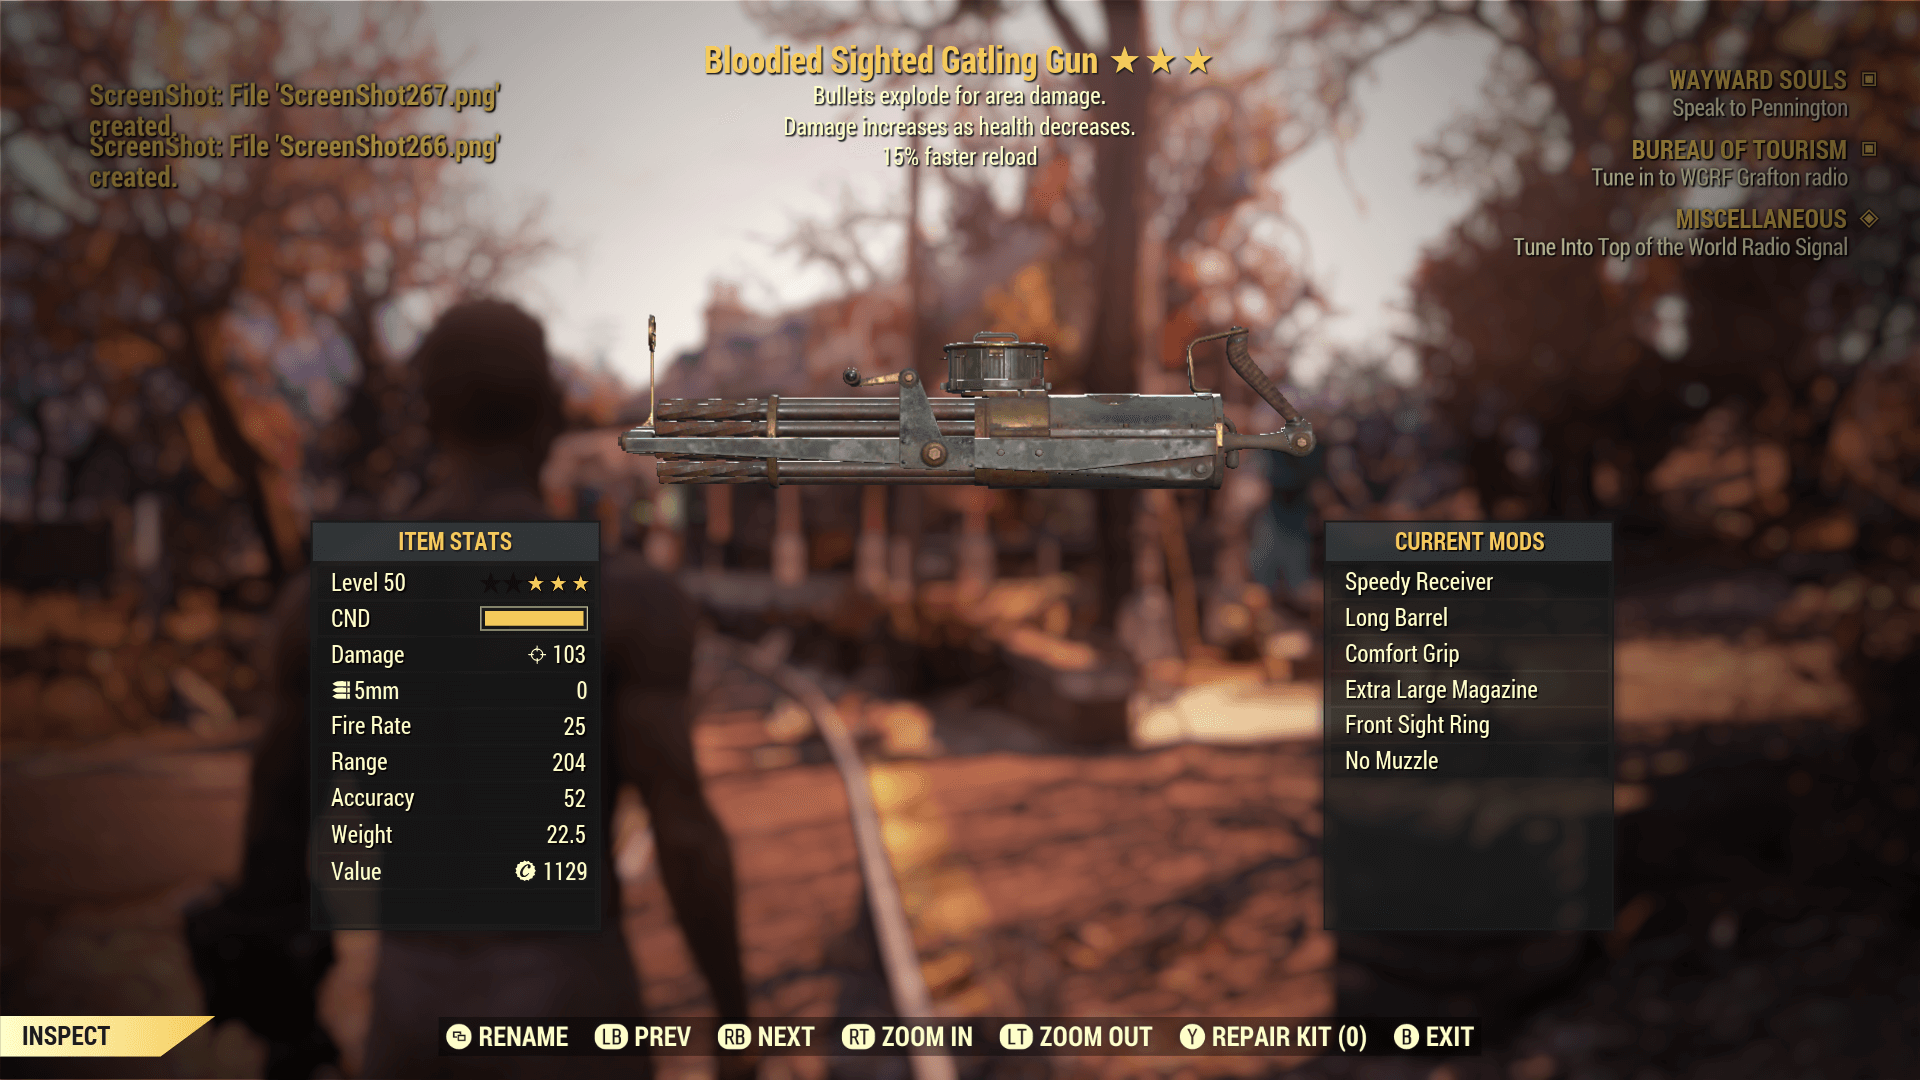 Bloodied Sighted Gatling Gun[15% faster reload]